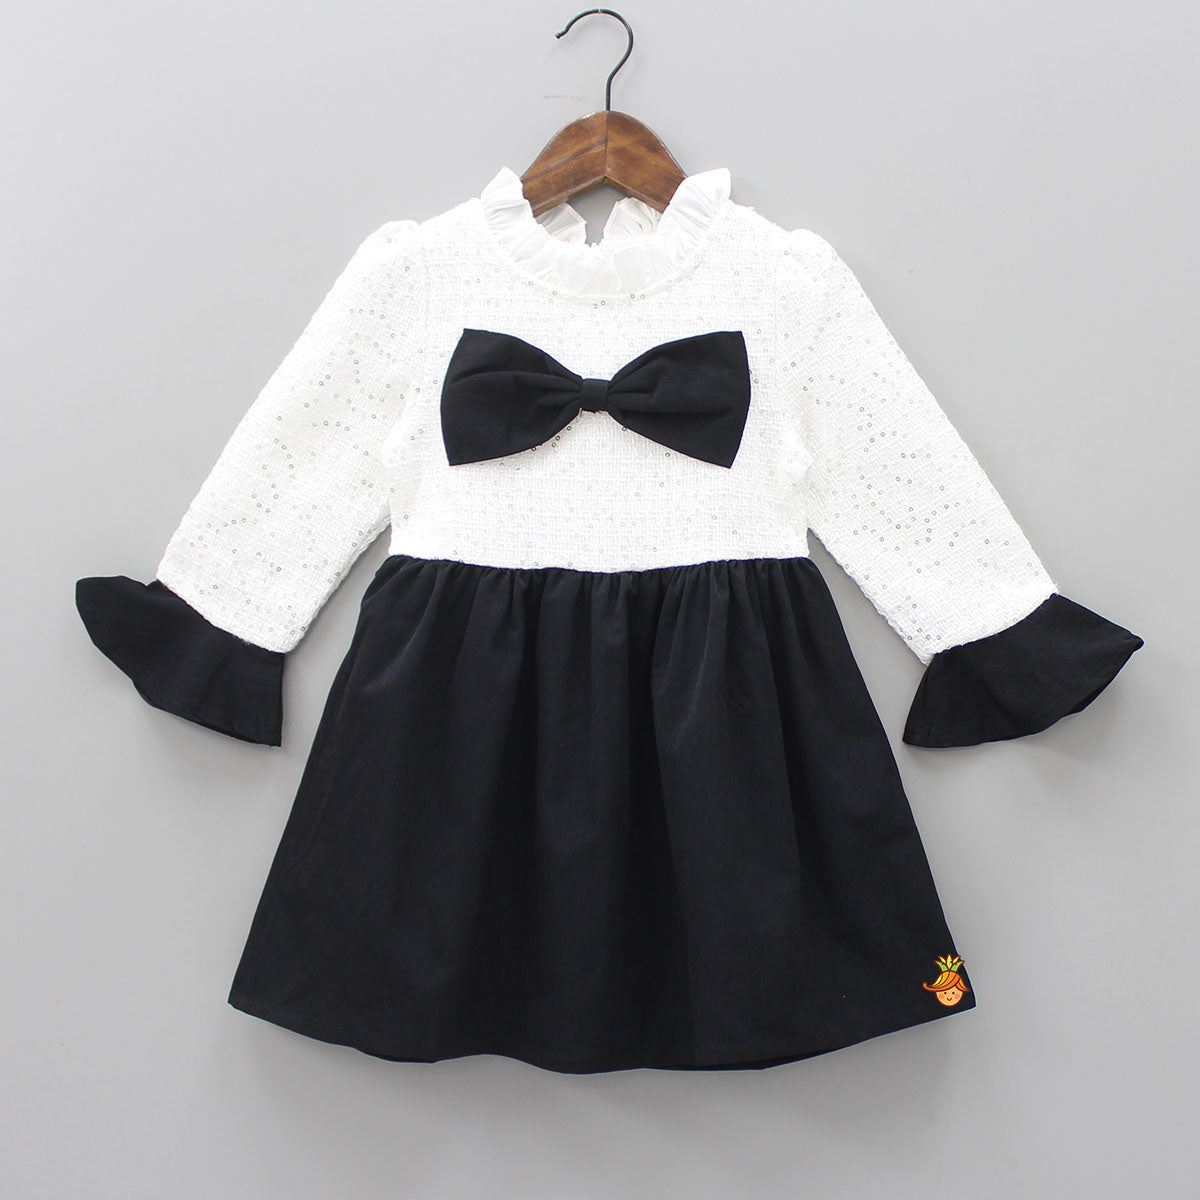 Black And White Bow Attached Knee Length Dress